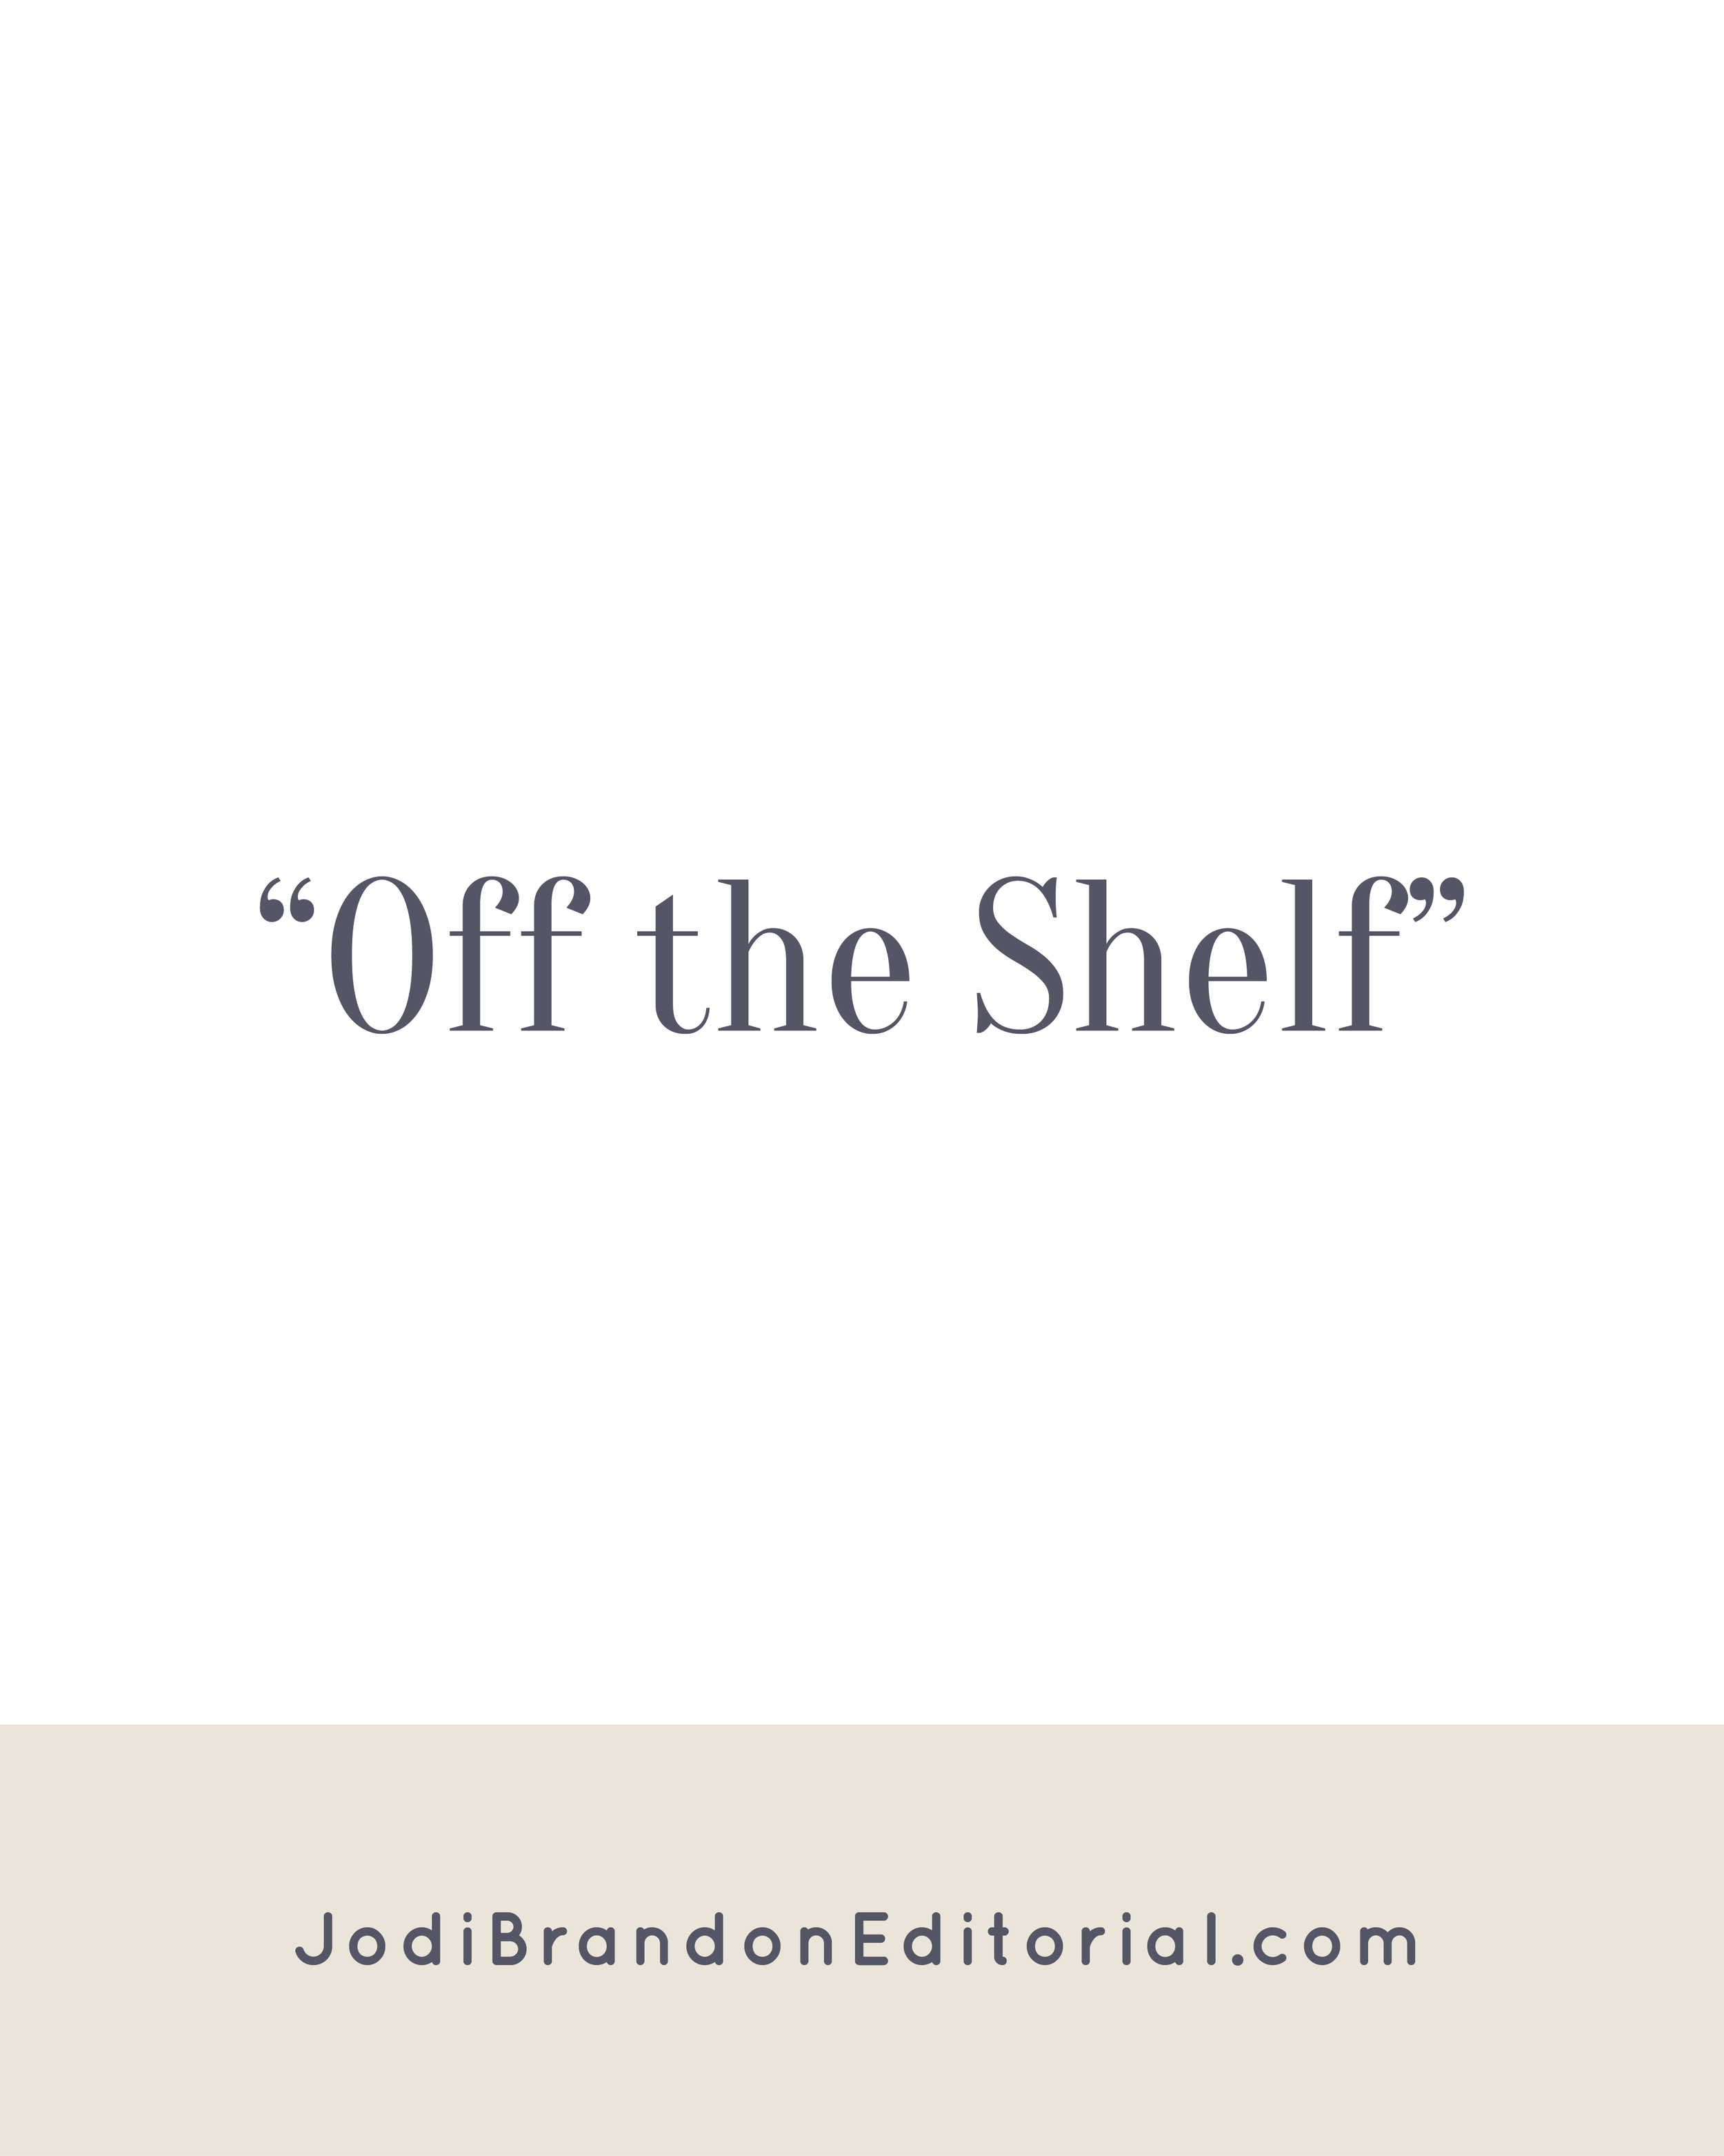 Welcome back to Off the Shelf, friends! We're trying something a bit different with Off the Shelf in 2017. Instead of me posting reviews each month, an entrepreneur friend and I will be trading reviews of the same book. In the spirit of National Organizing Month, first up is the best-seller The Life-Changing Magic of Tidying Up, which I had somehow never read. | Jodi Brandon Editorial